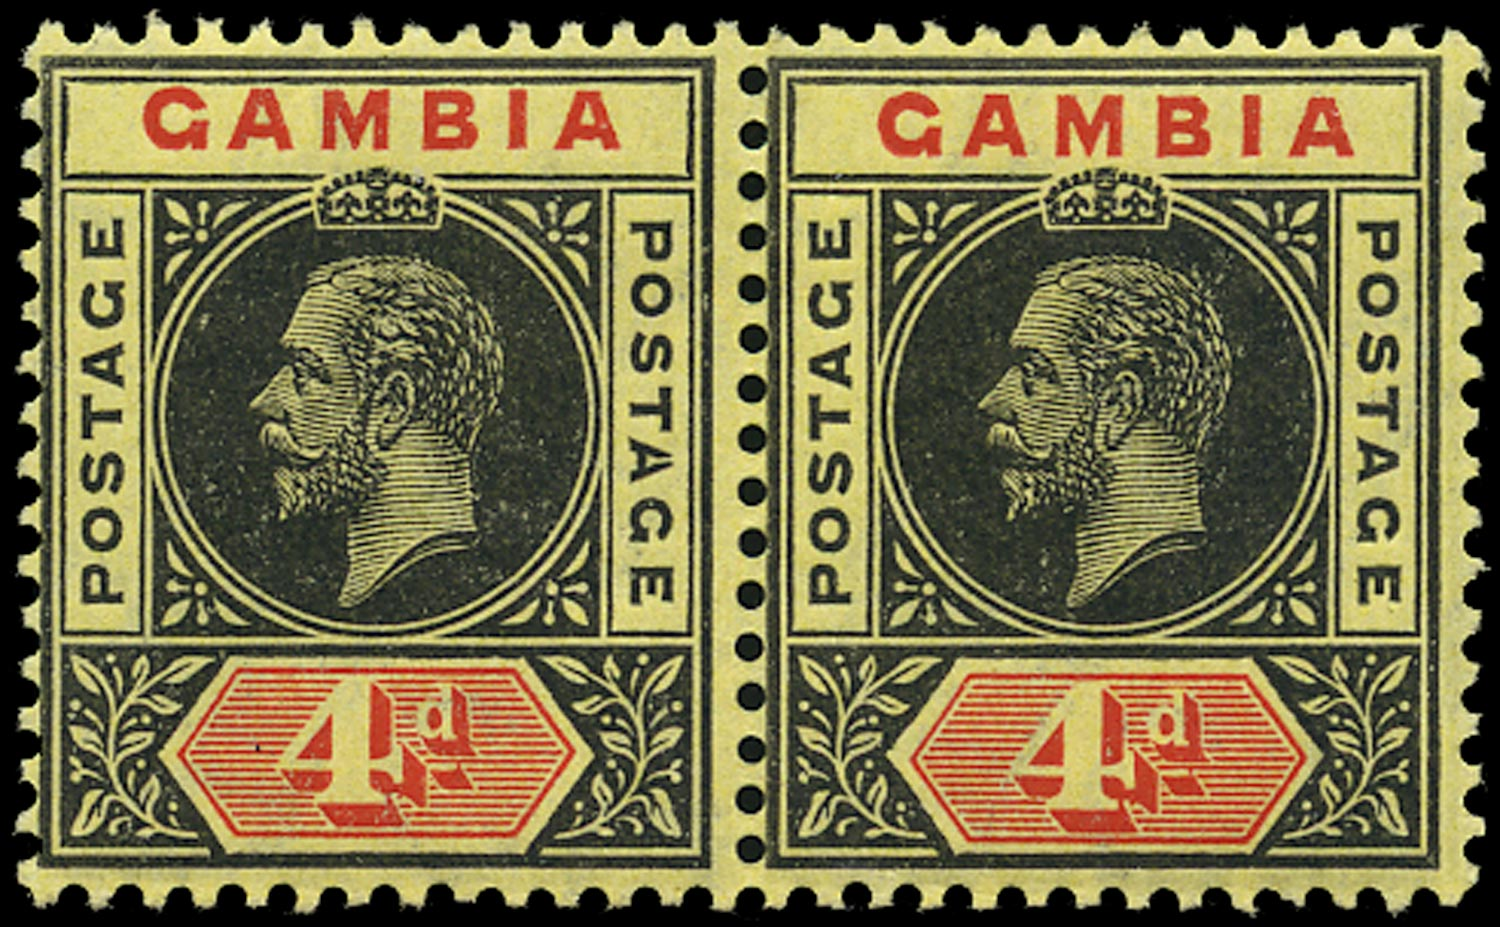 GAMBIA 1912  SG92a/d Mint 4d black and red on lemon watermark MCA variety Split A